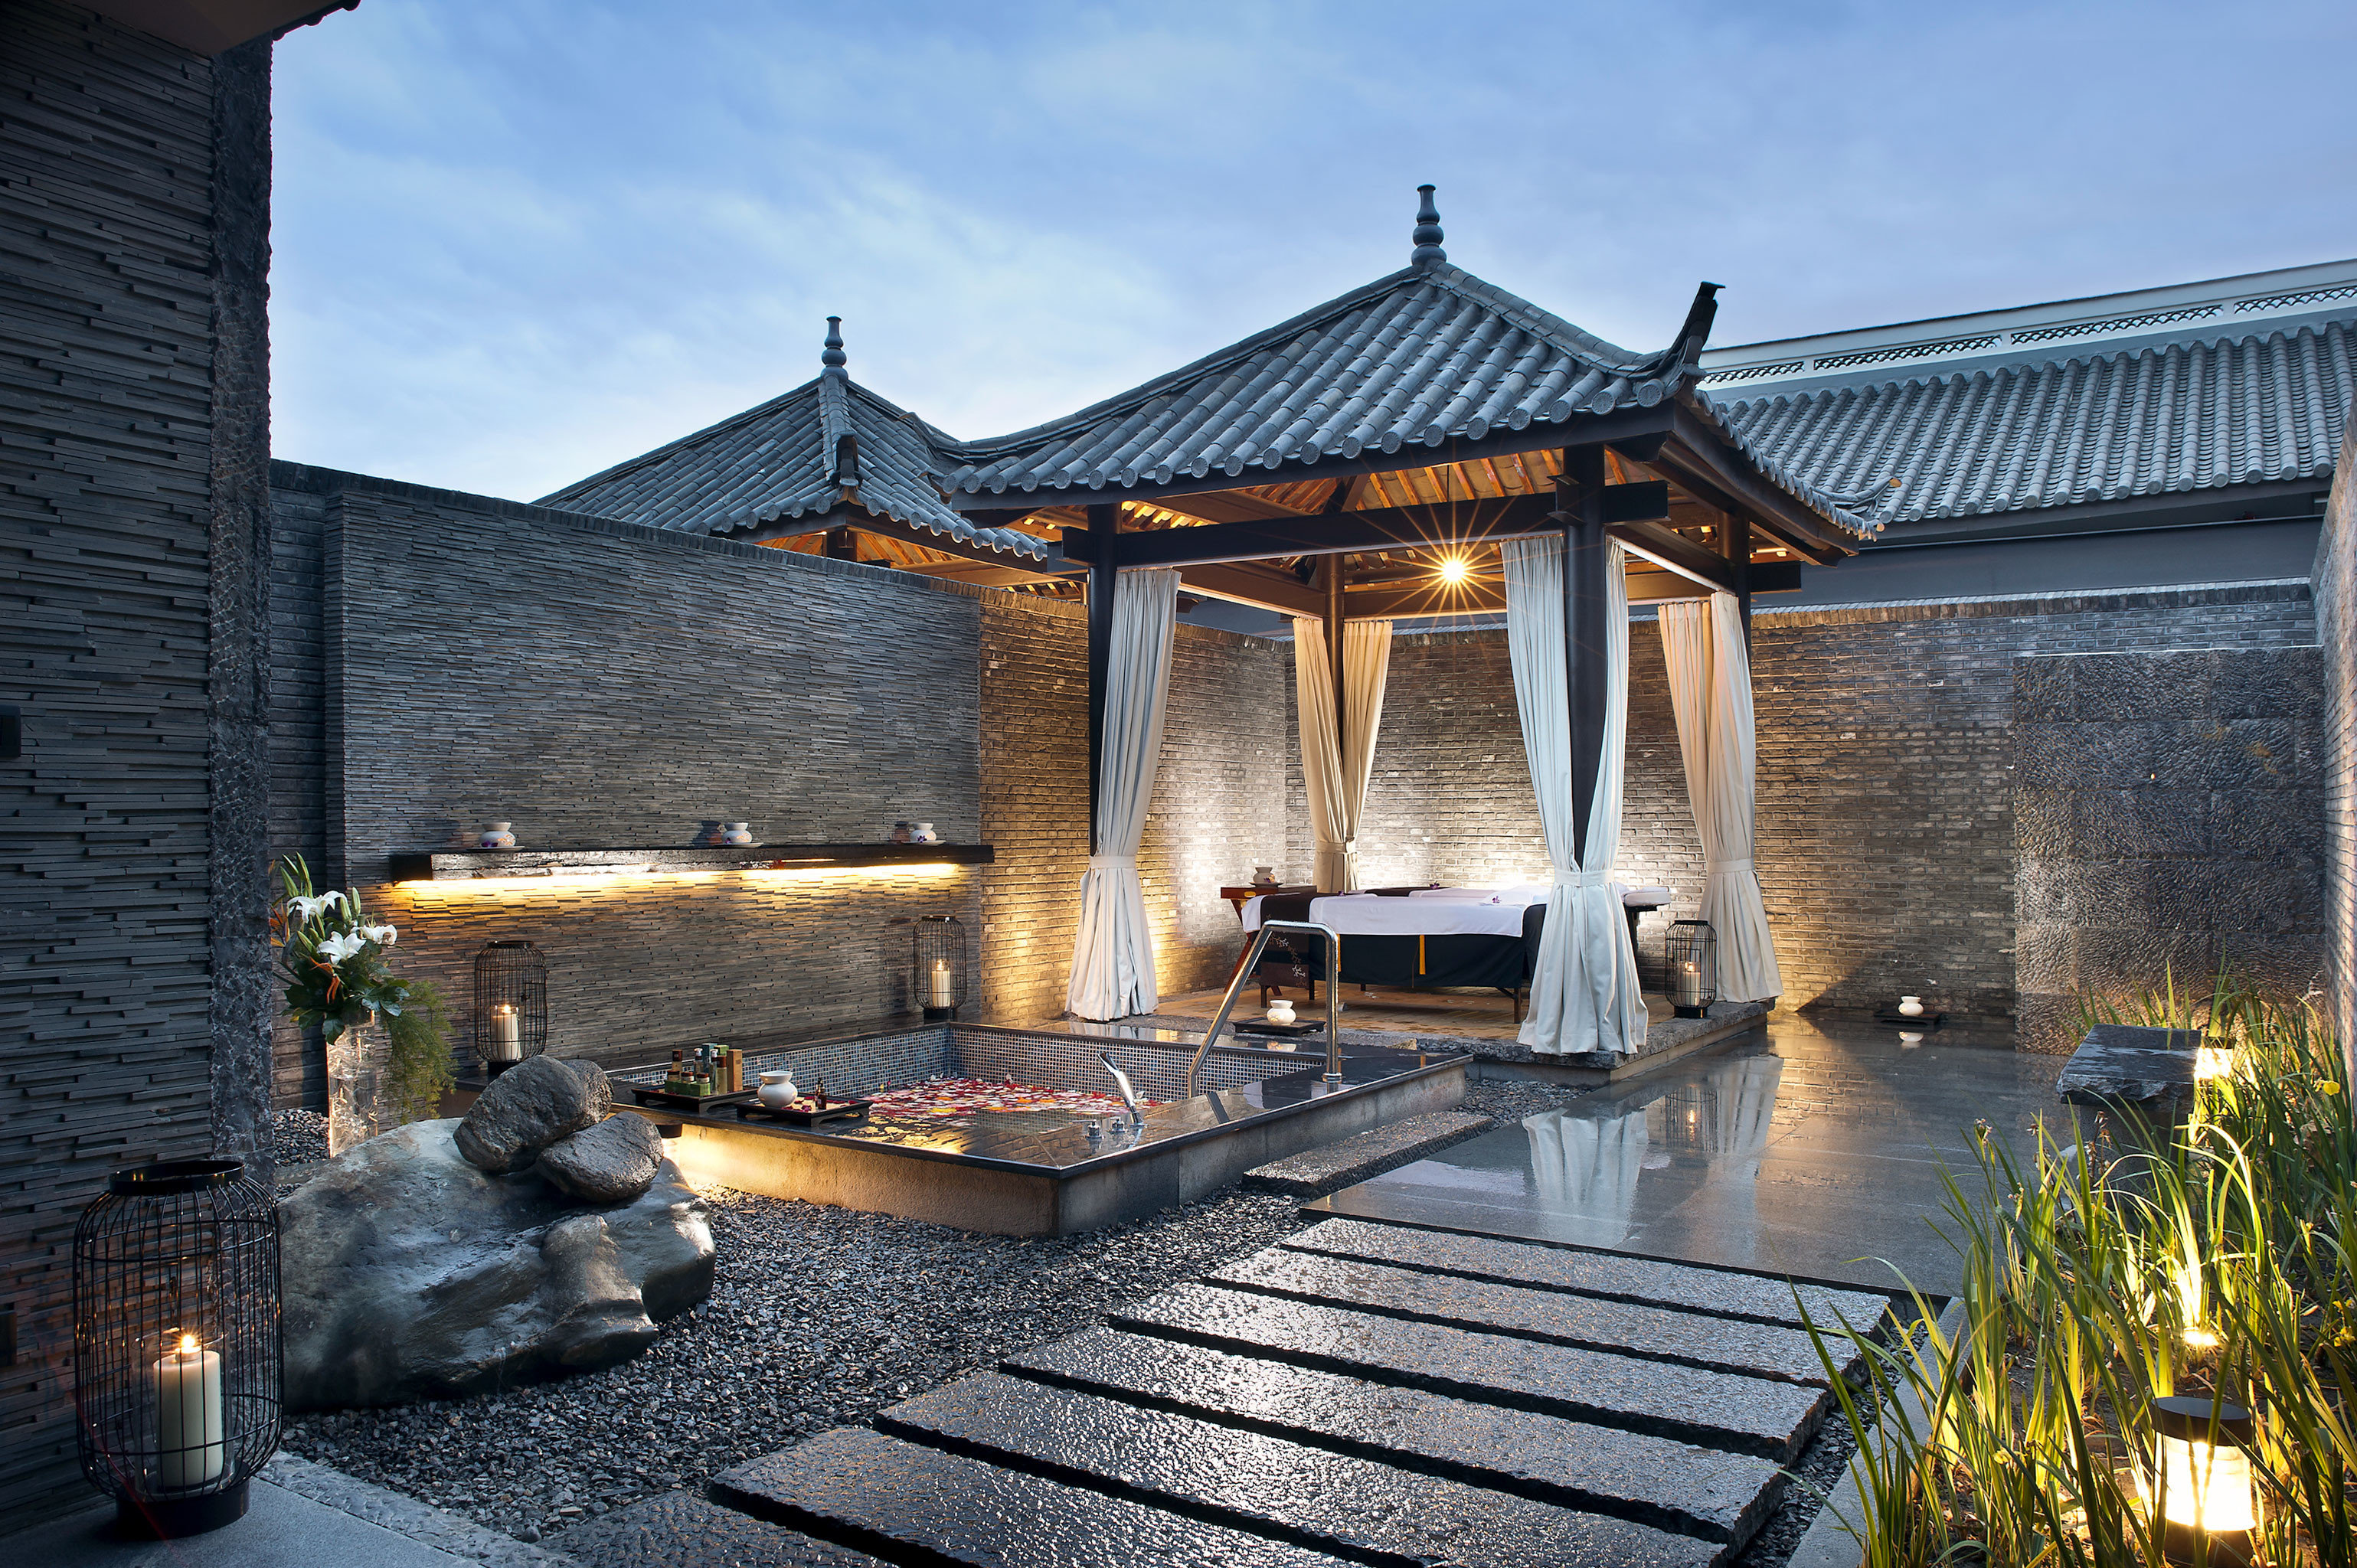 Architecture Resort Spa Wellness sky property house building home backyard cottage Villa mansion outdoor structure Courtyard farmhouse stone